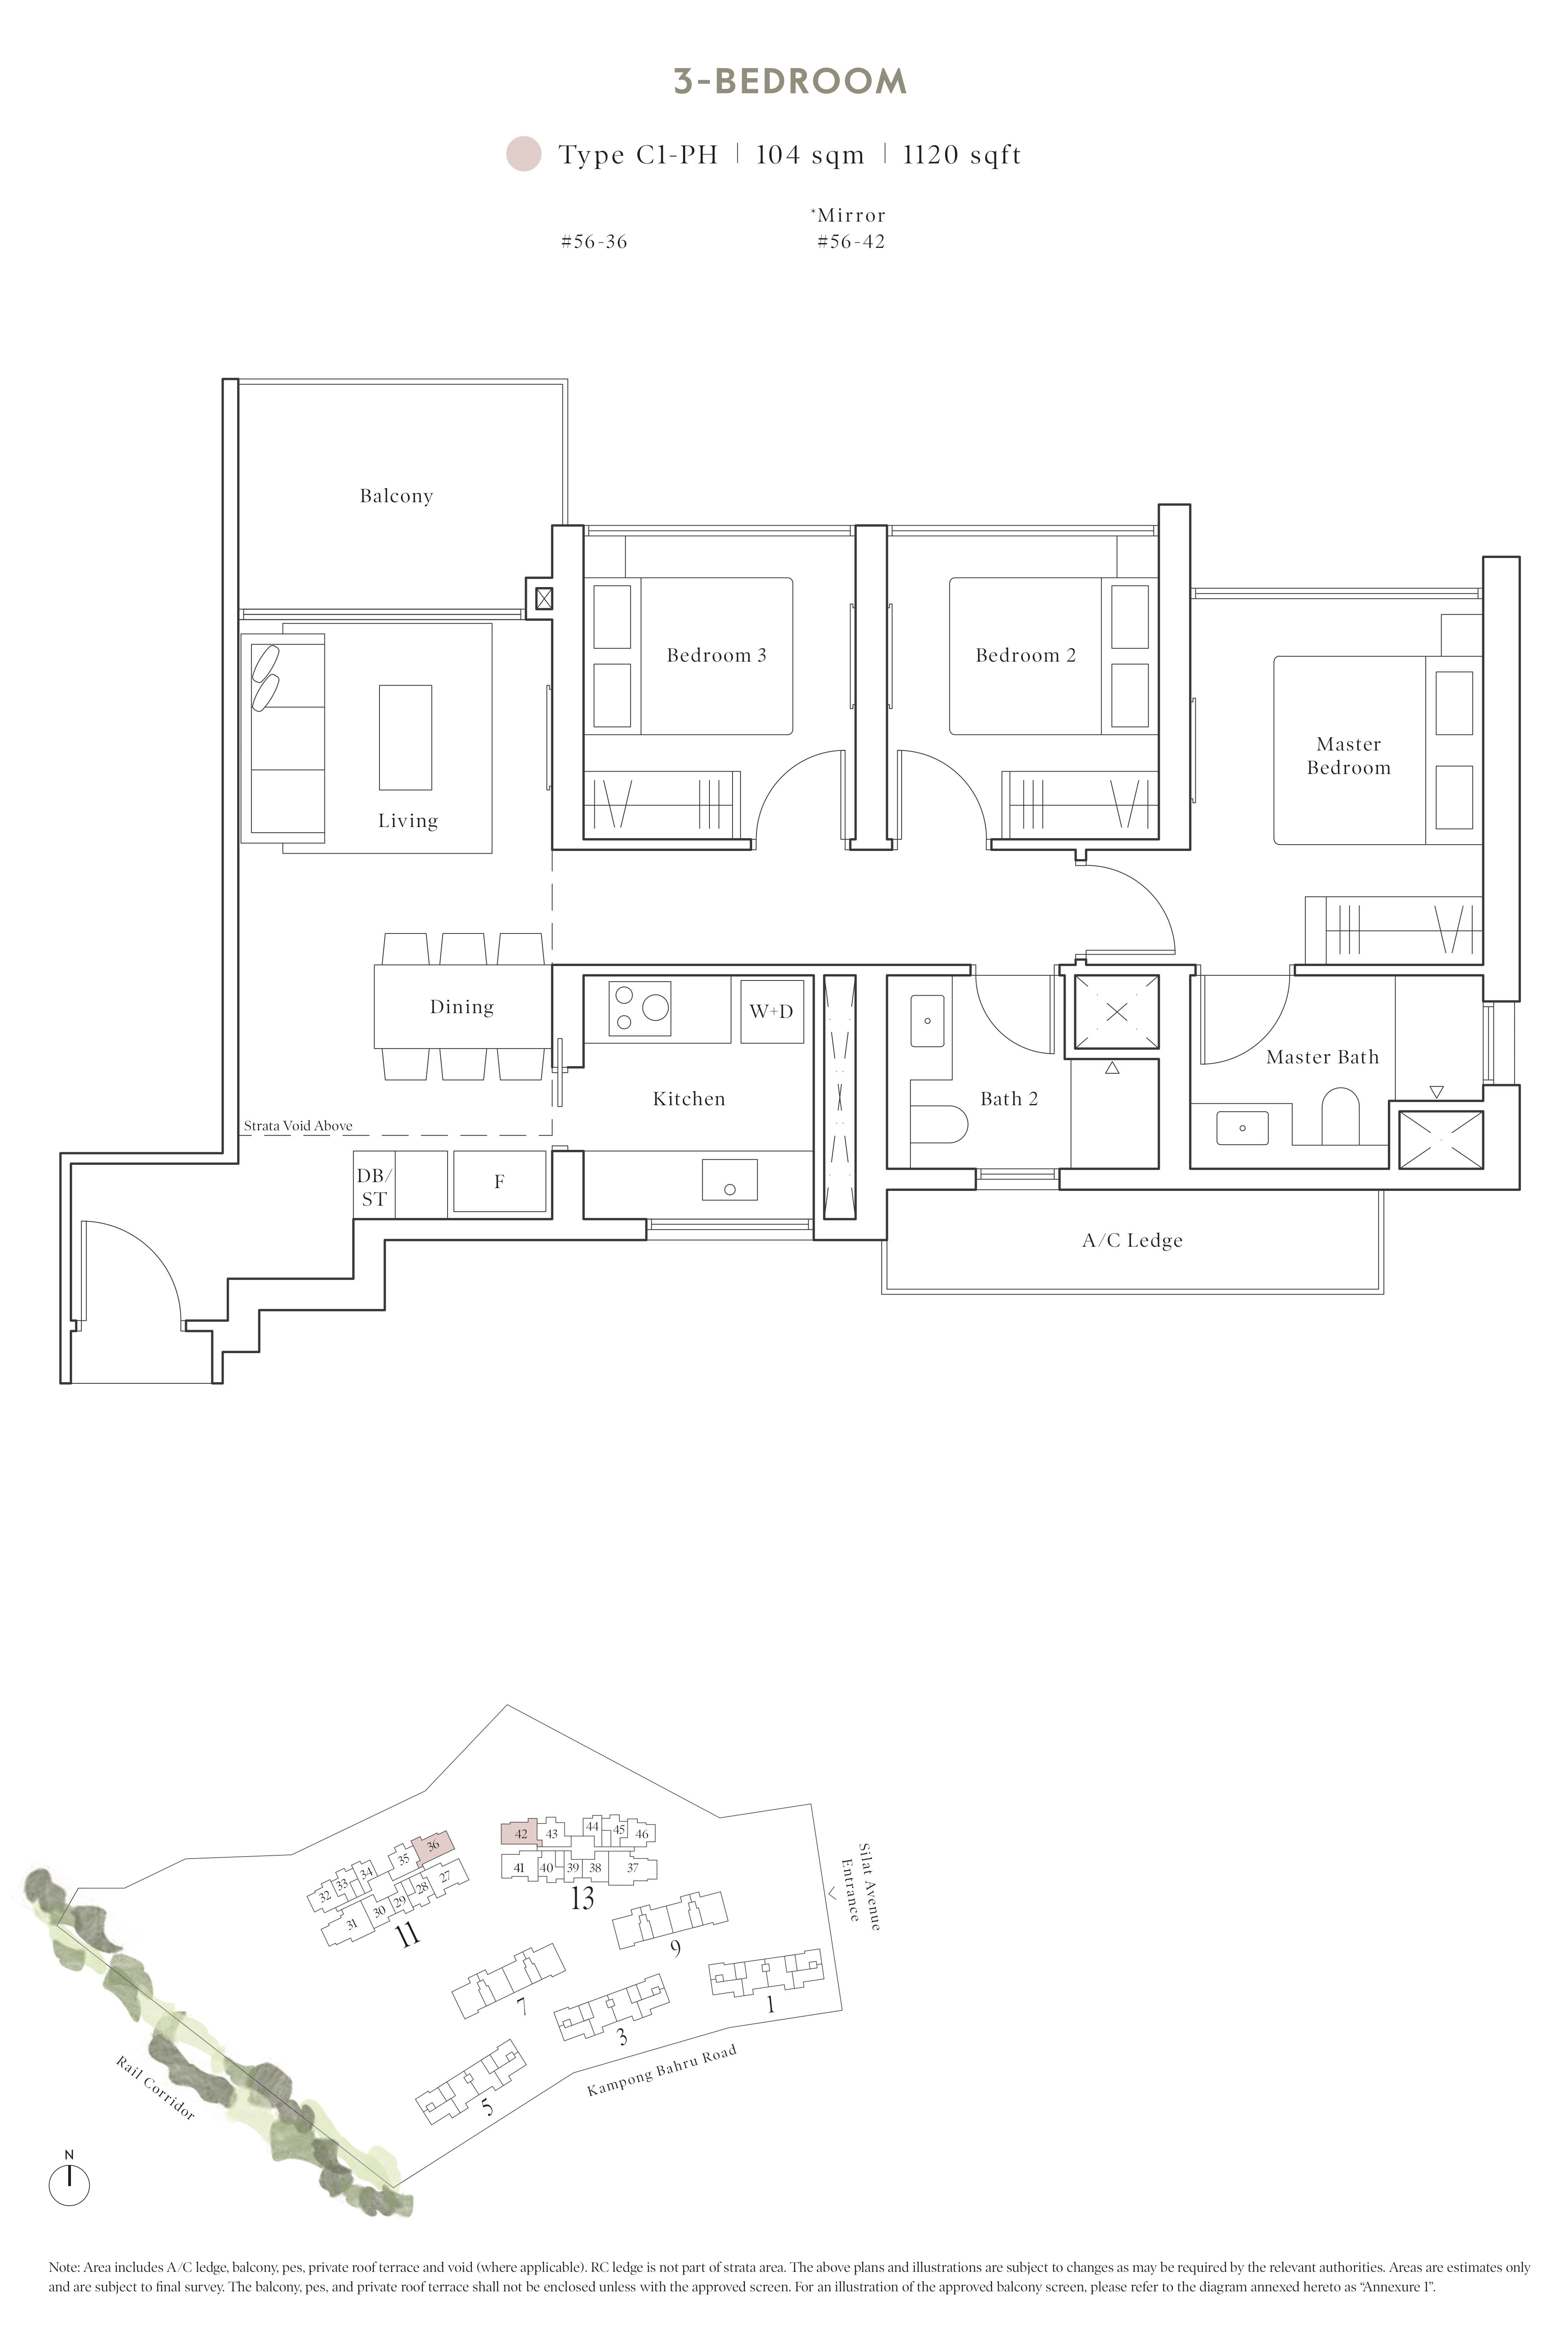 Avenue South Residence 南峰雅苑 peak floor plan 3-bedroom penthouse c1-ph